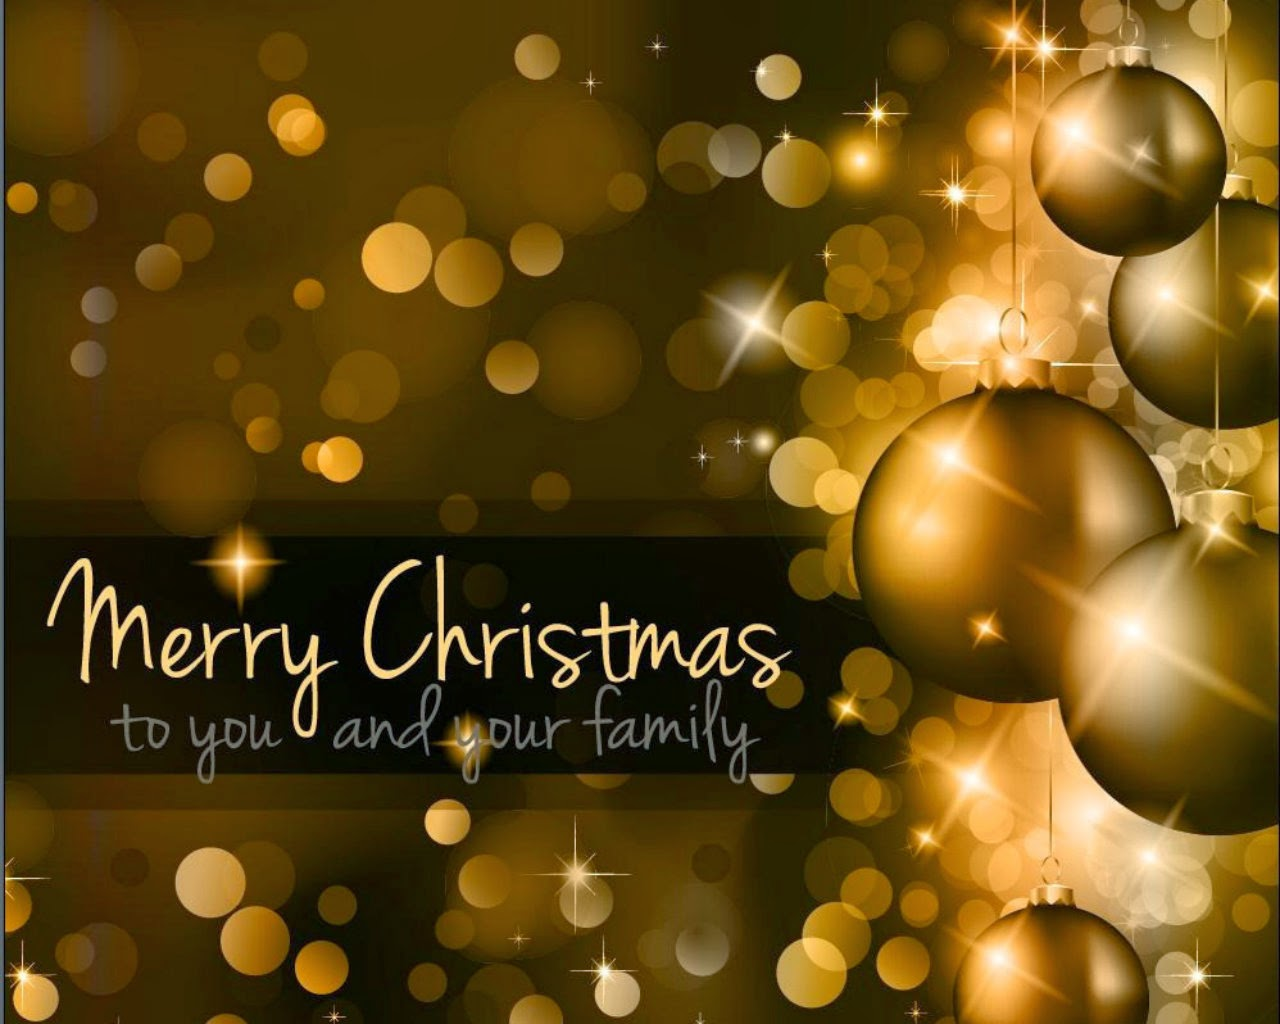 Merry-Christmas-to-you-and-your-family-golden-baubles-lights-background.jpg